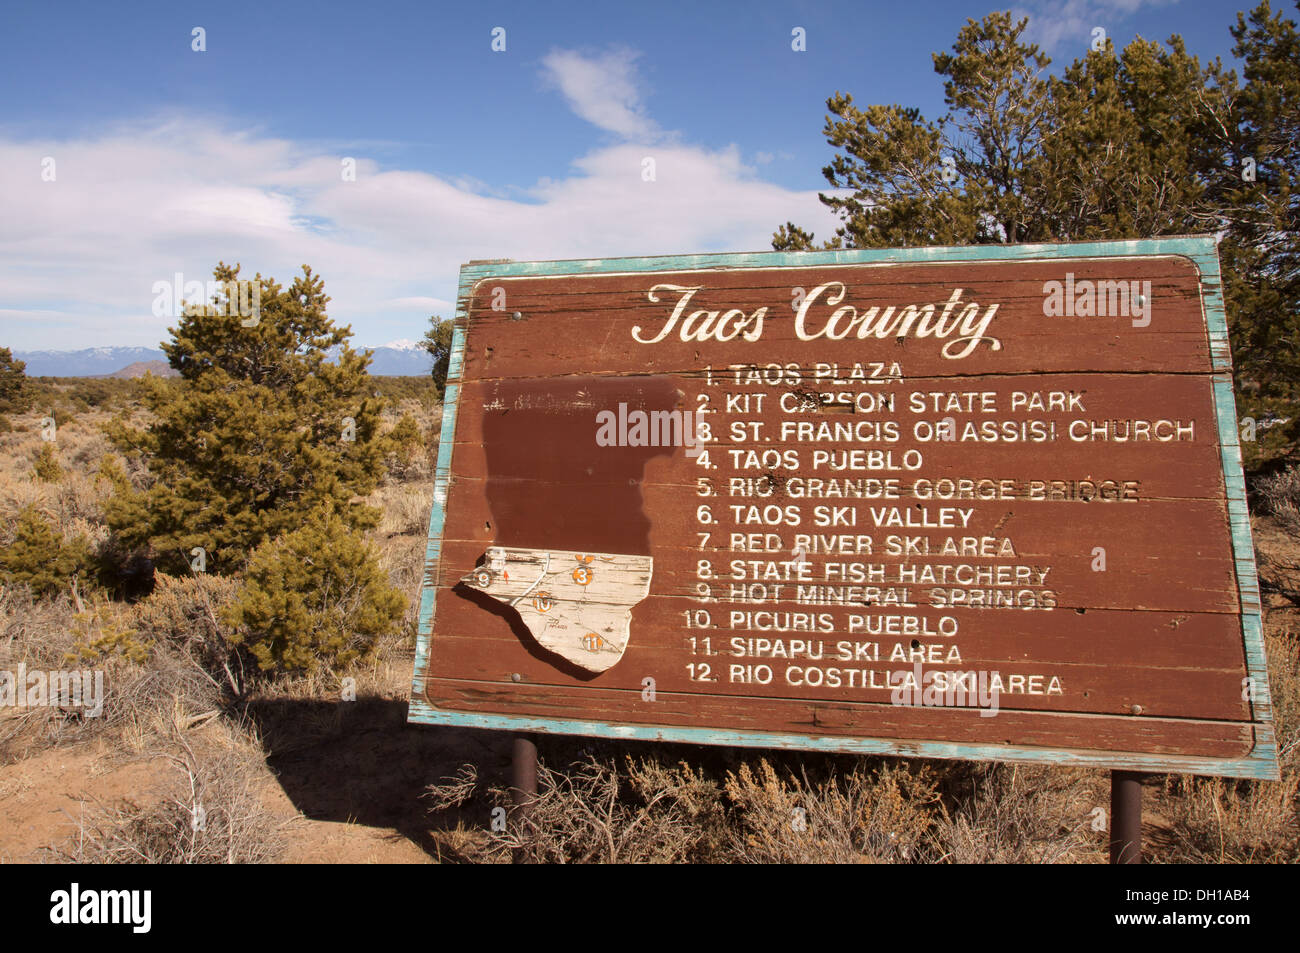 New mexico taos county carson - Stock Photo Taos County Sign New Mexico Nm Plaza Kit Carson State Park Saint St Francis Of Assisi Church Pueblo Rio Grande